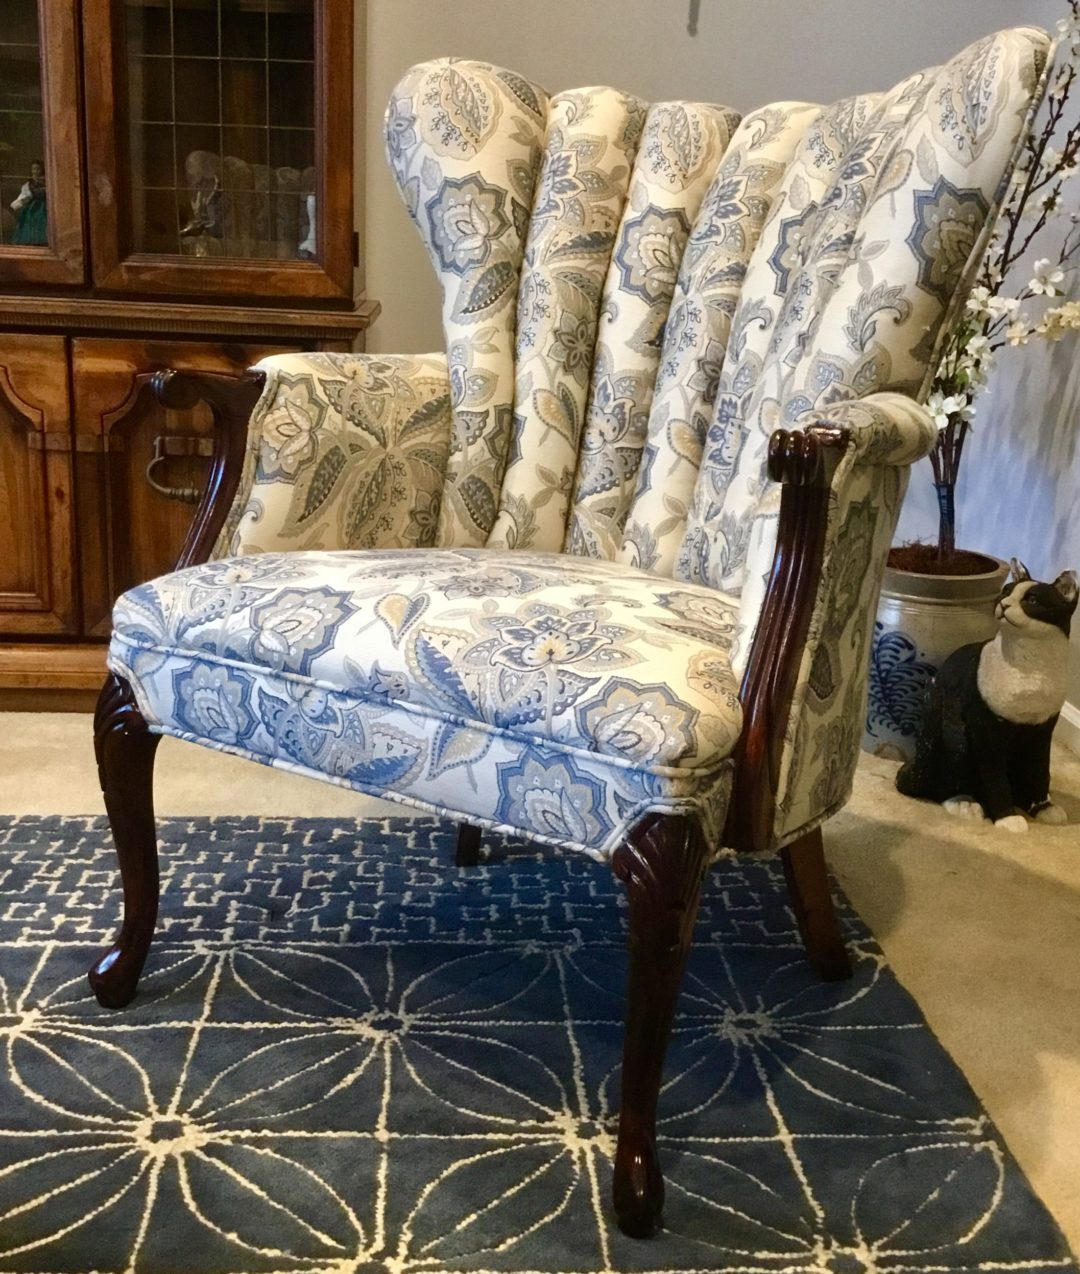 Buttonwood refinished chair